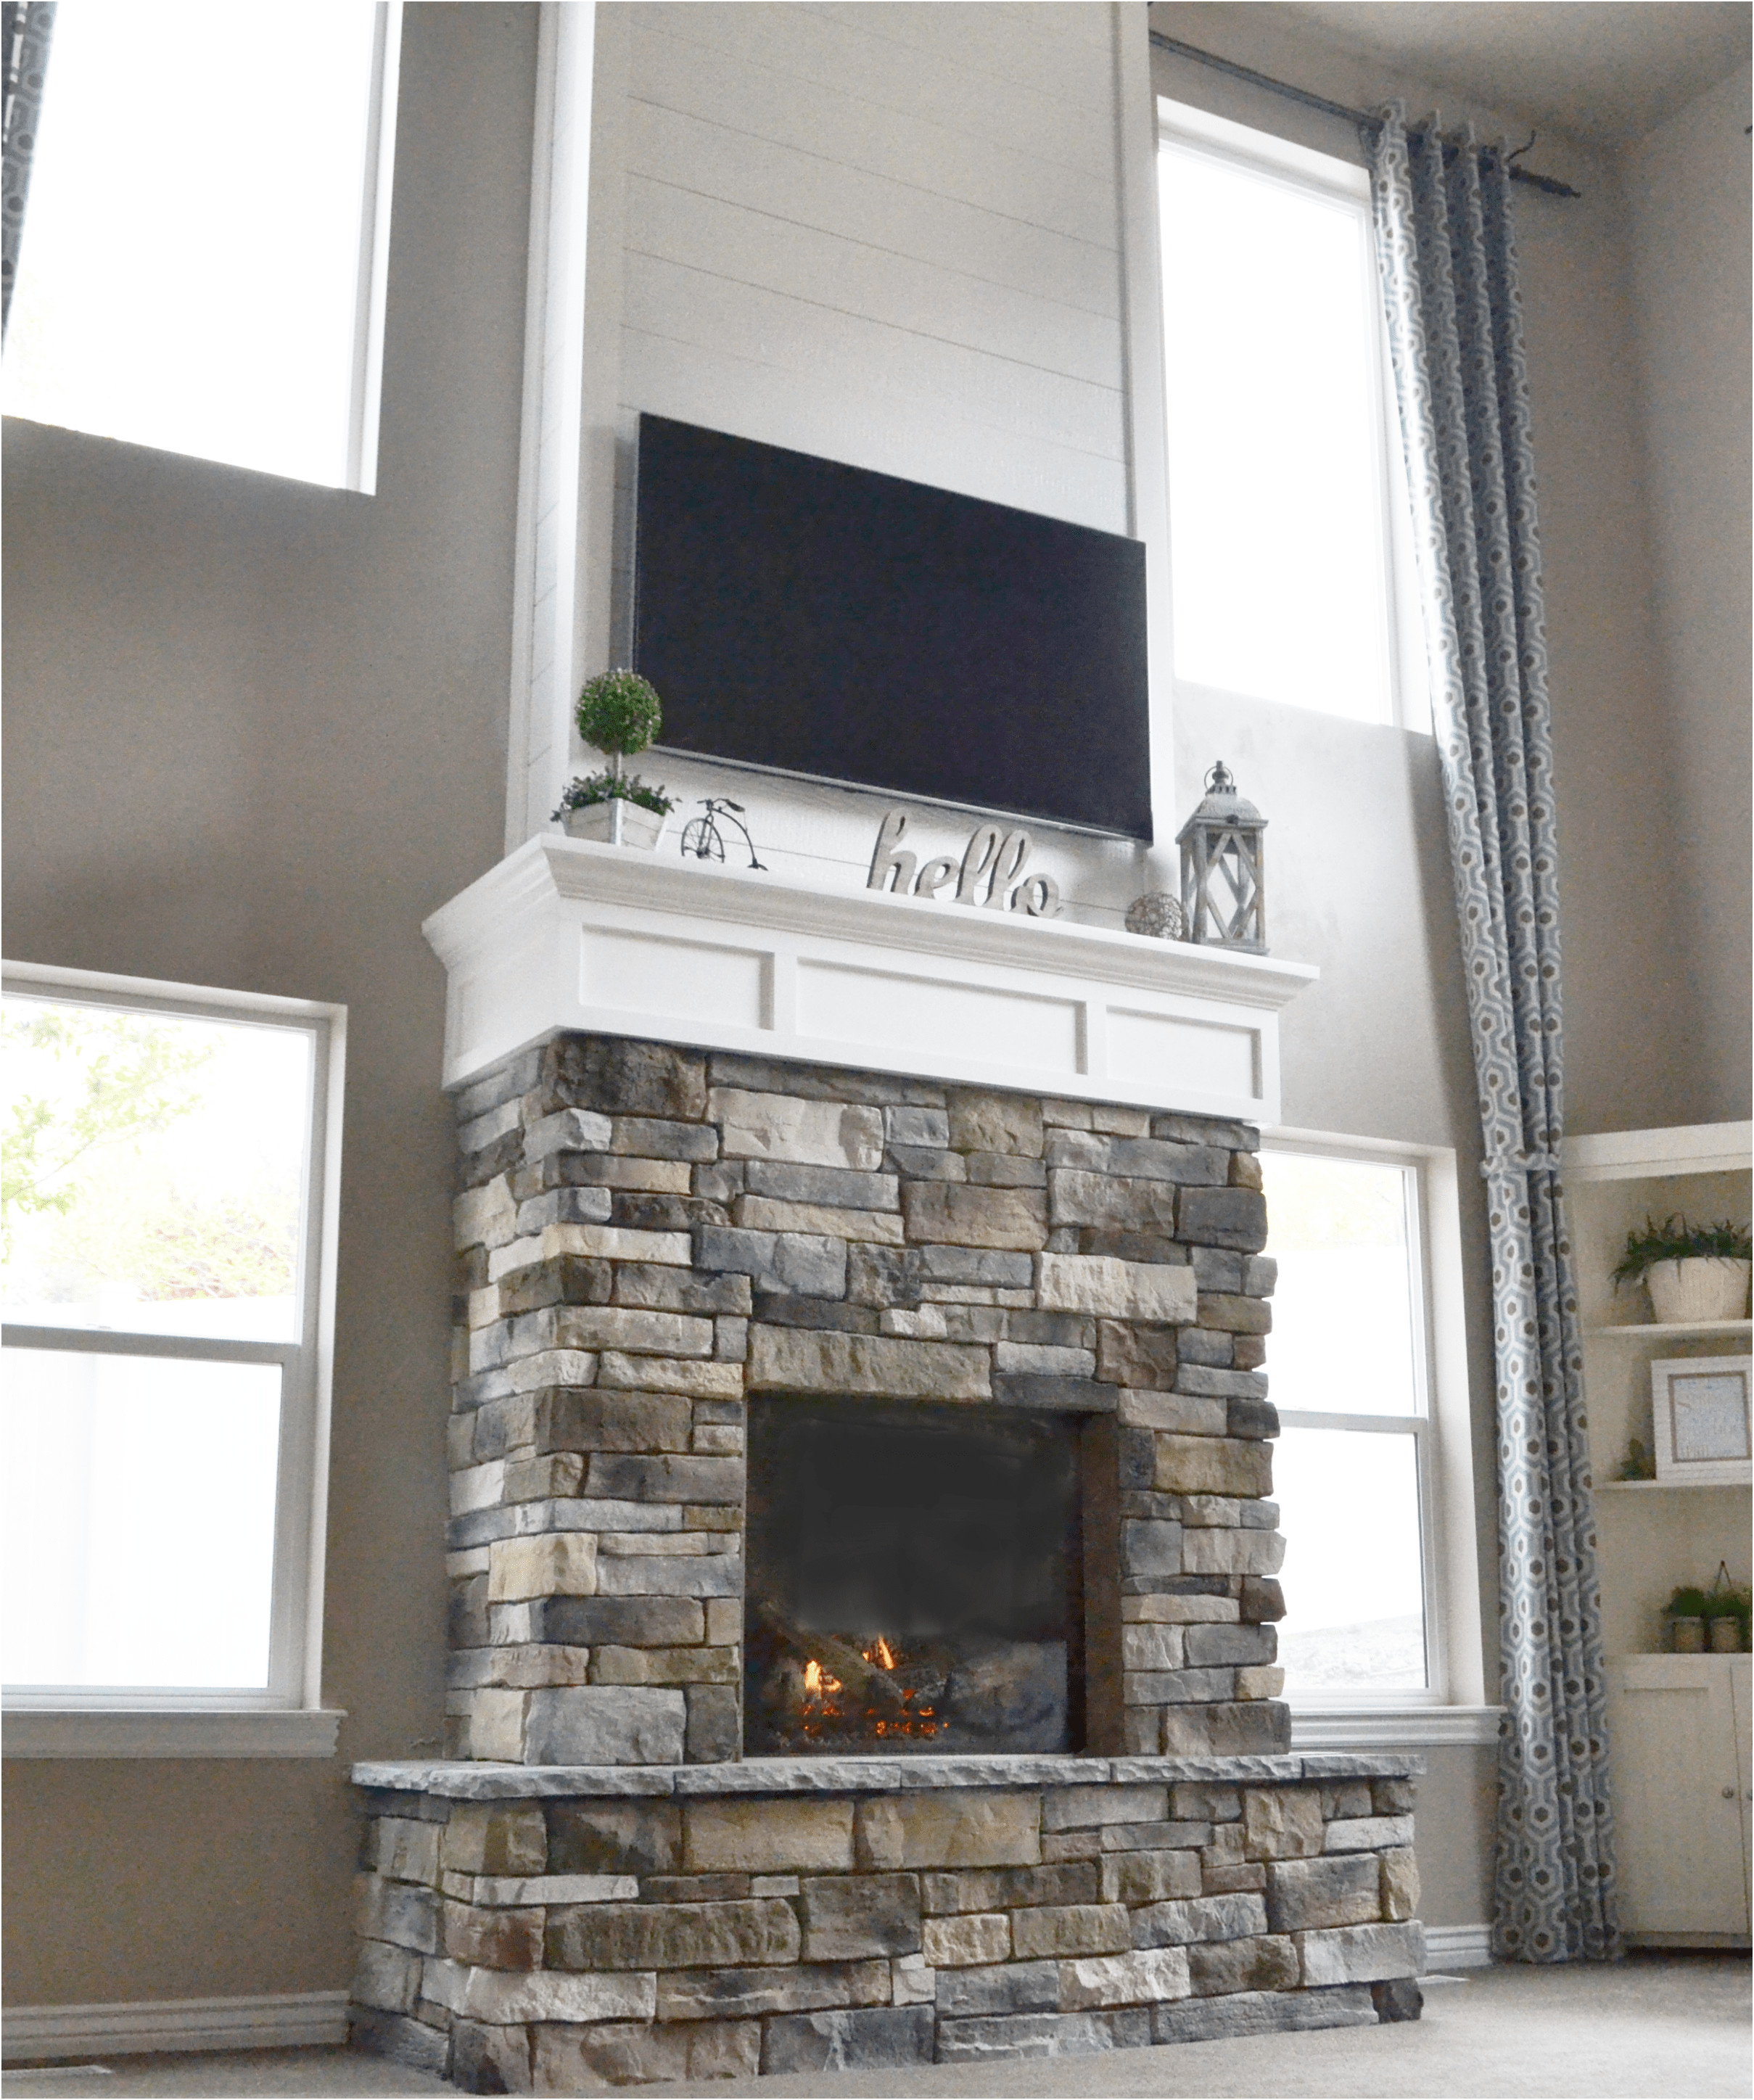 Awesome Ideas for Fireplace Hearth